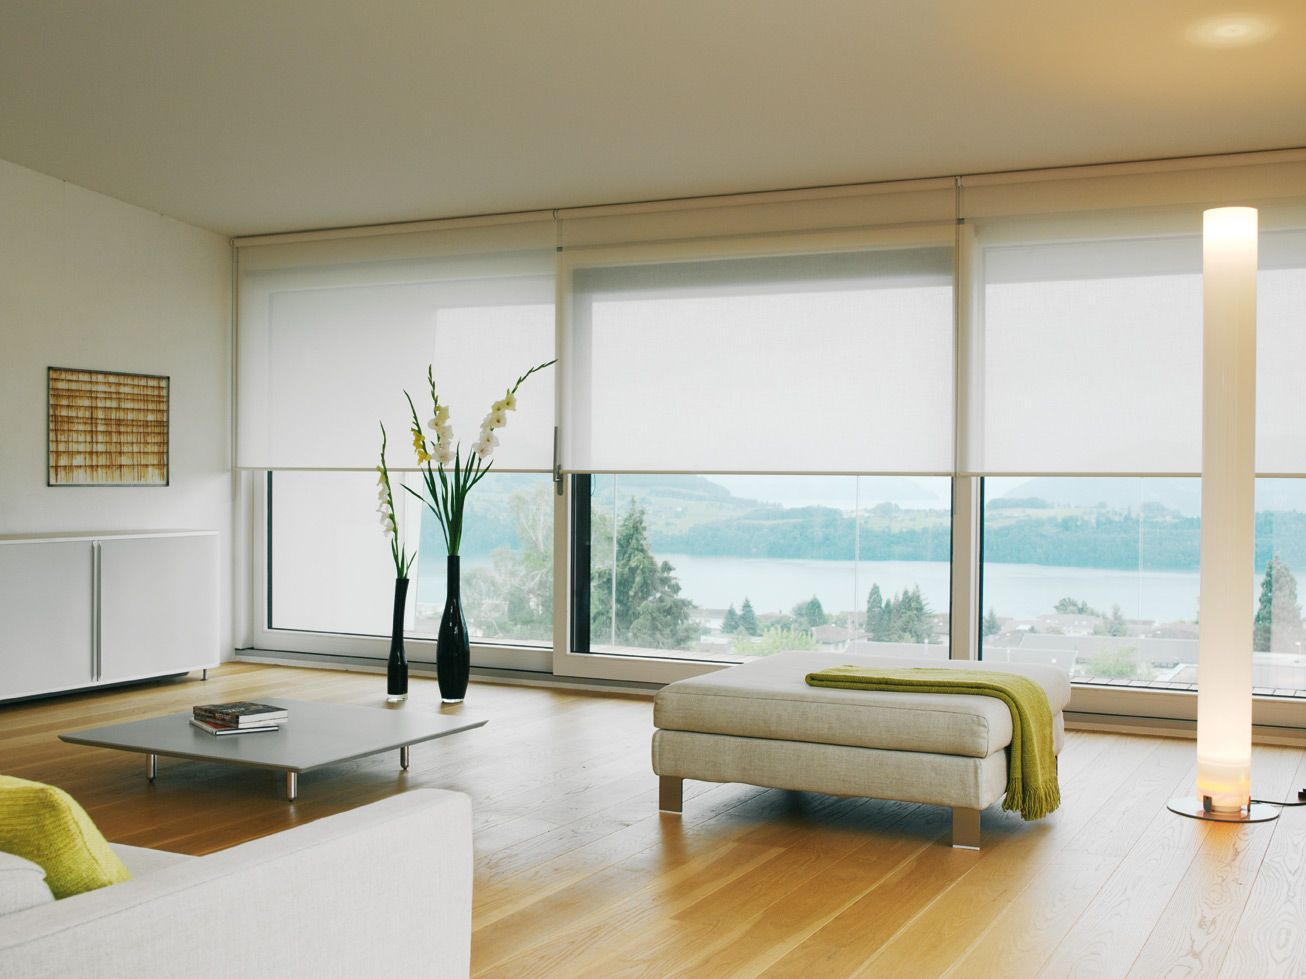 Fotos Estores Screen.Estores Screen Sunroom Curtains With Blinds House Blinds